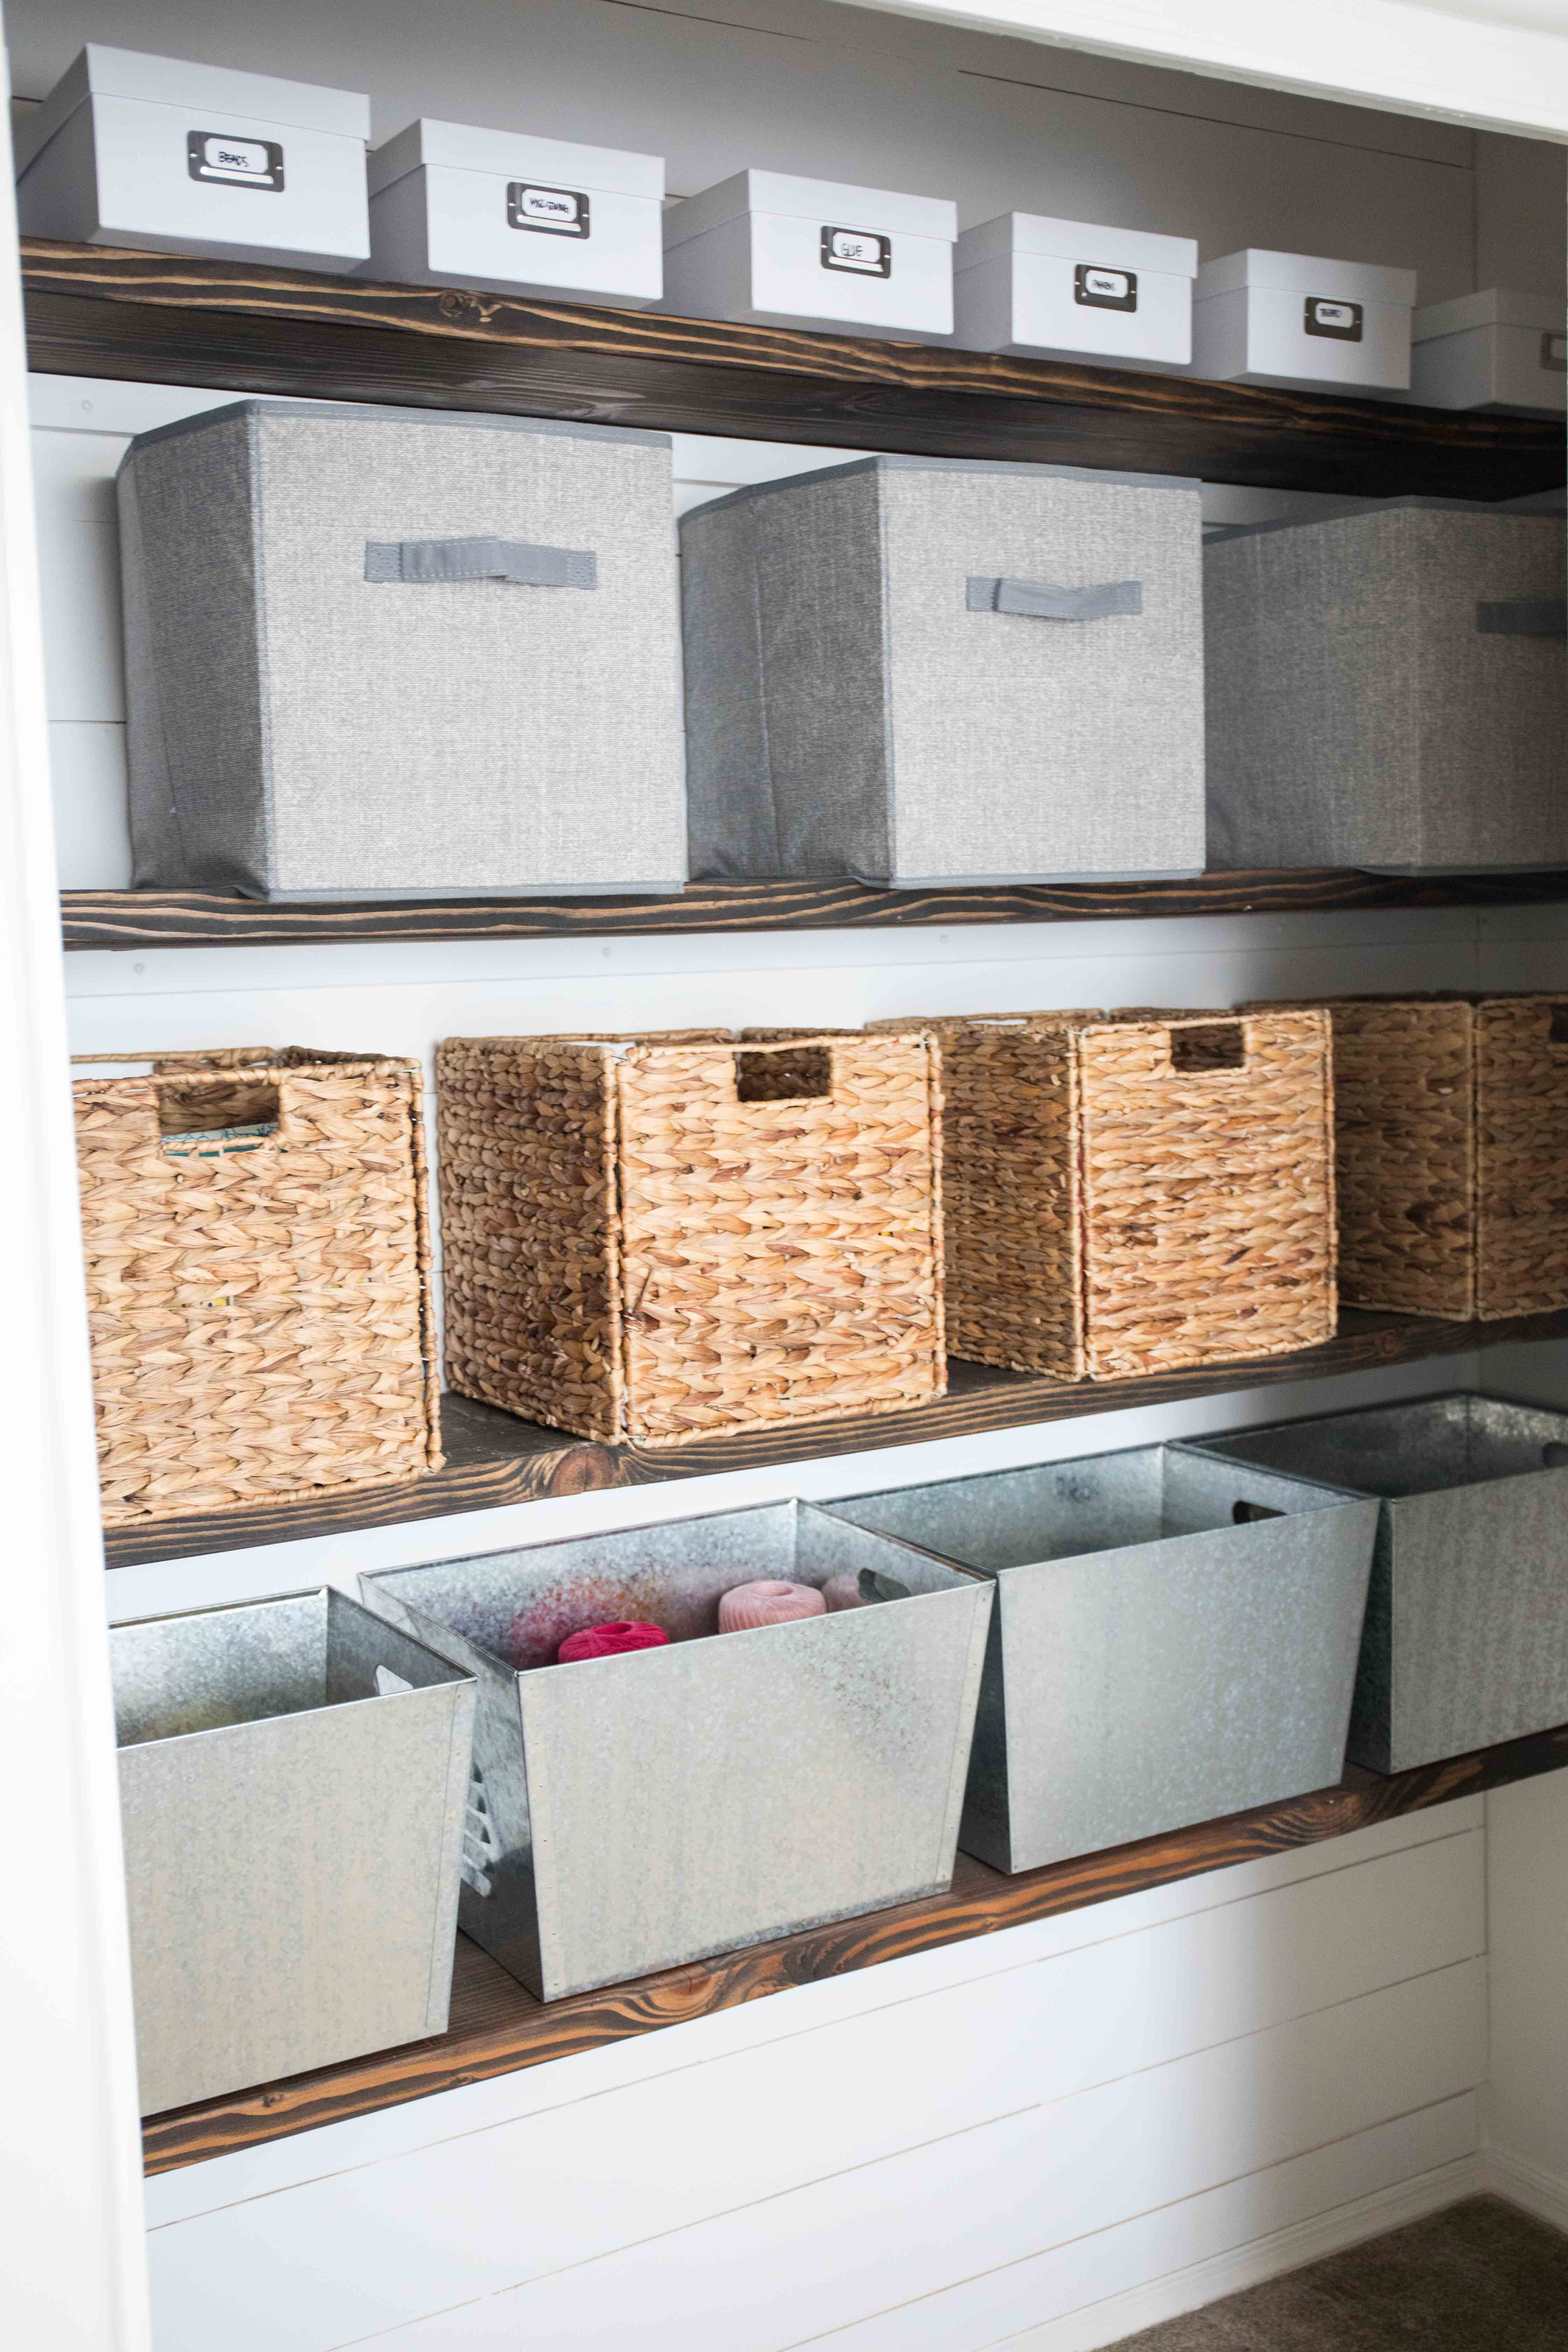 craft organization ideas how to organize your craft supplies-closet organization ideas